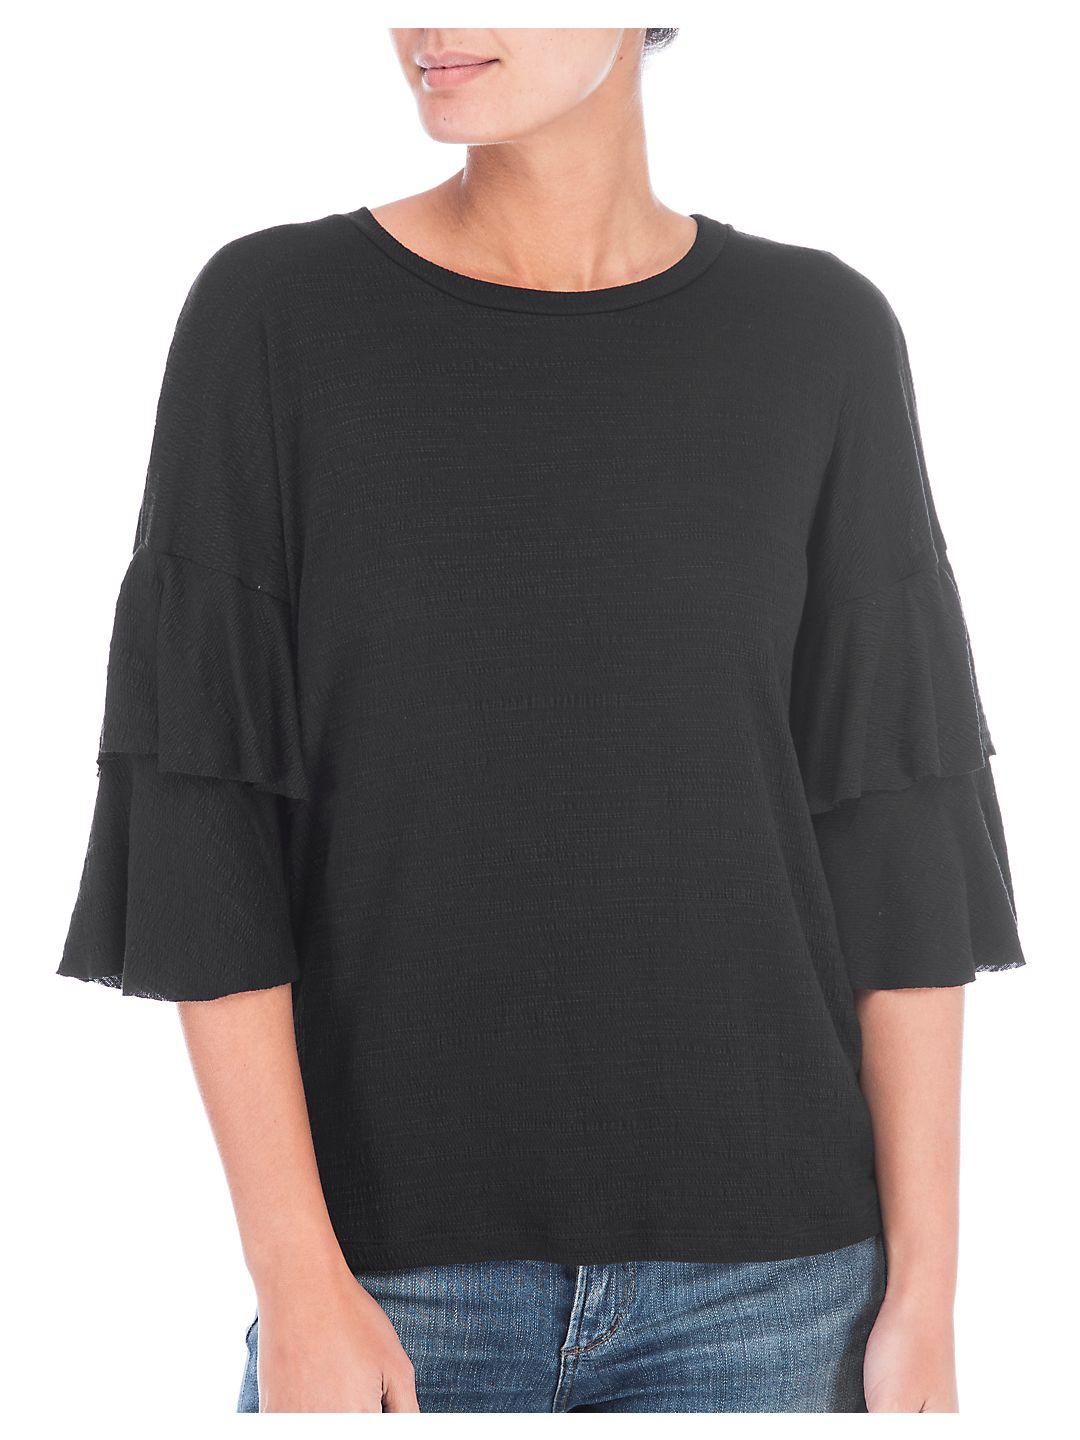 Bobeau Womens Raven Textured Ruffle Sleeves Pullover Top Black XS